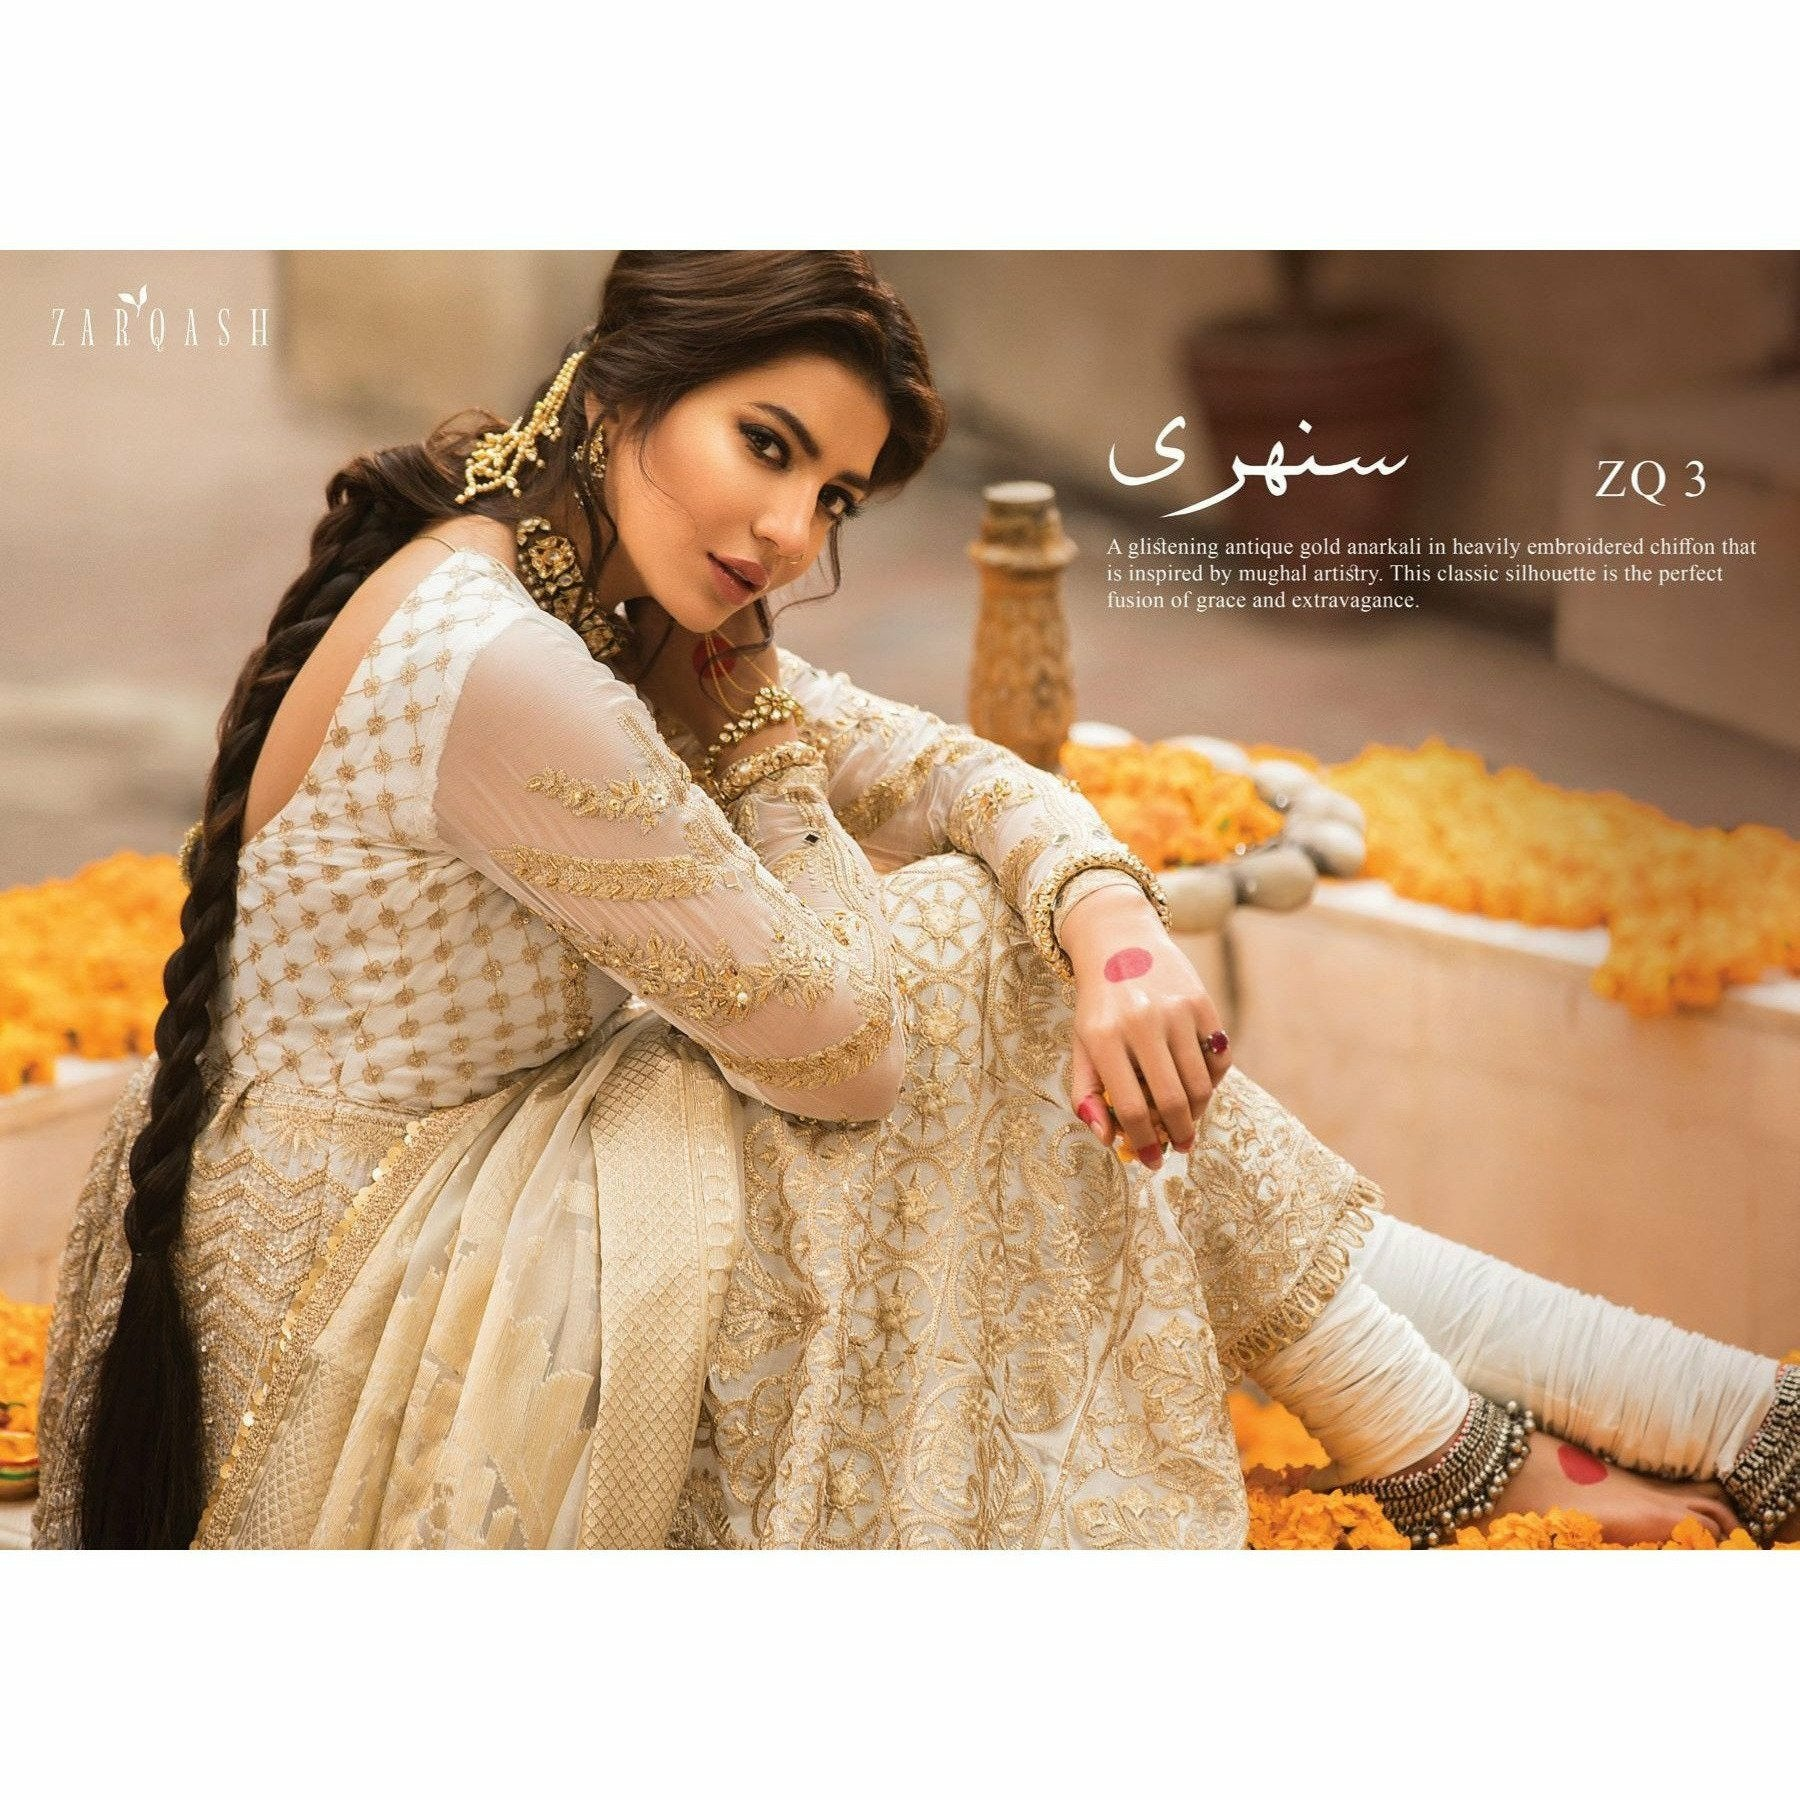 Rubaai By Zarqash | Luxury Wedding 20 | ZQ3 - Sunehri